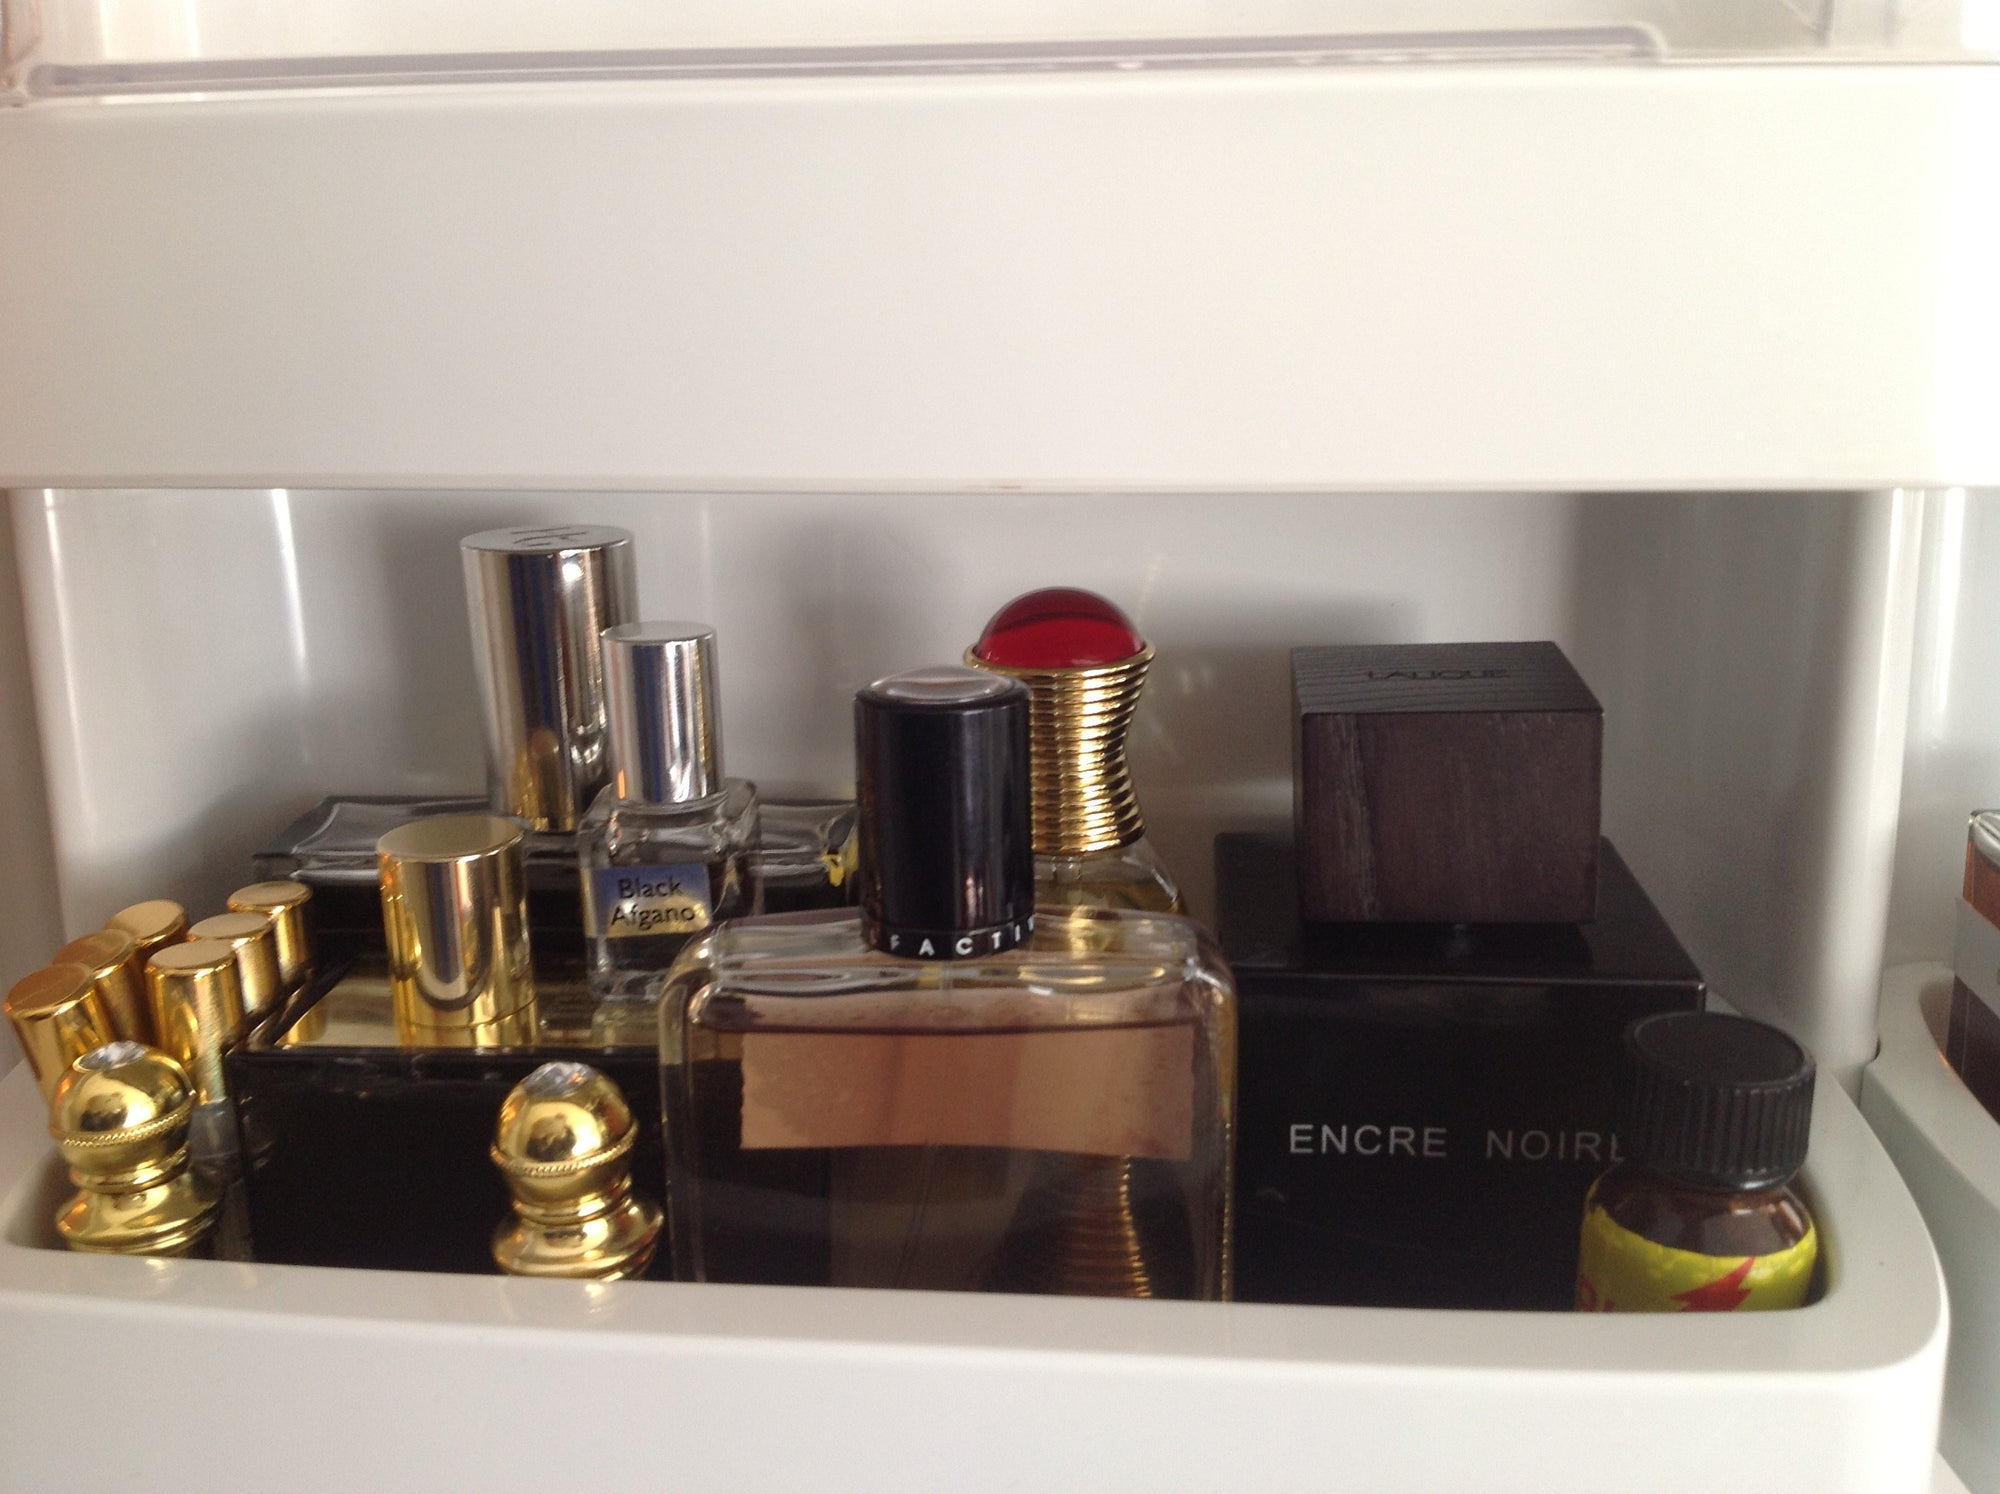 Can I put my perfume in the fridge?